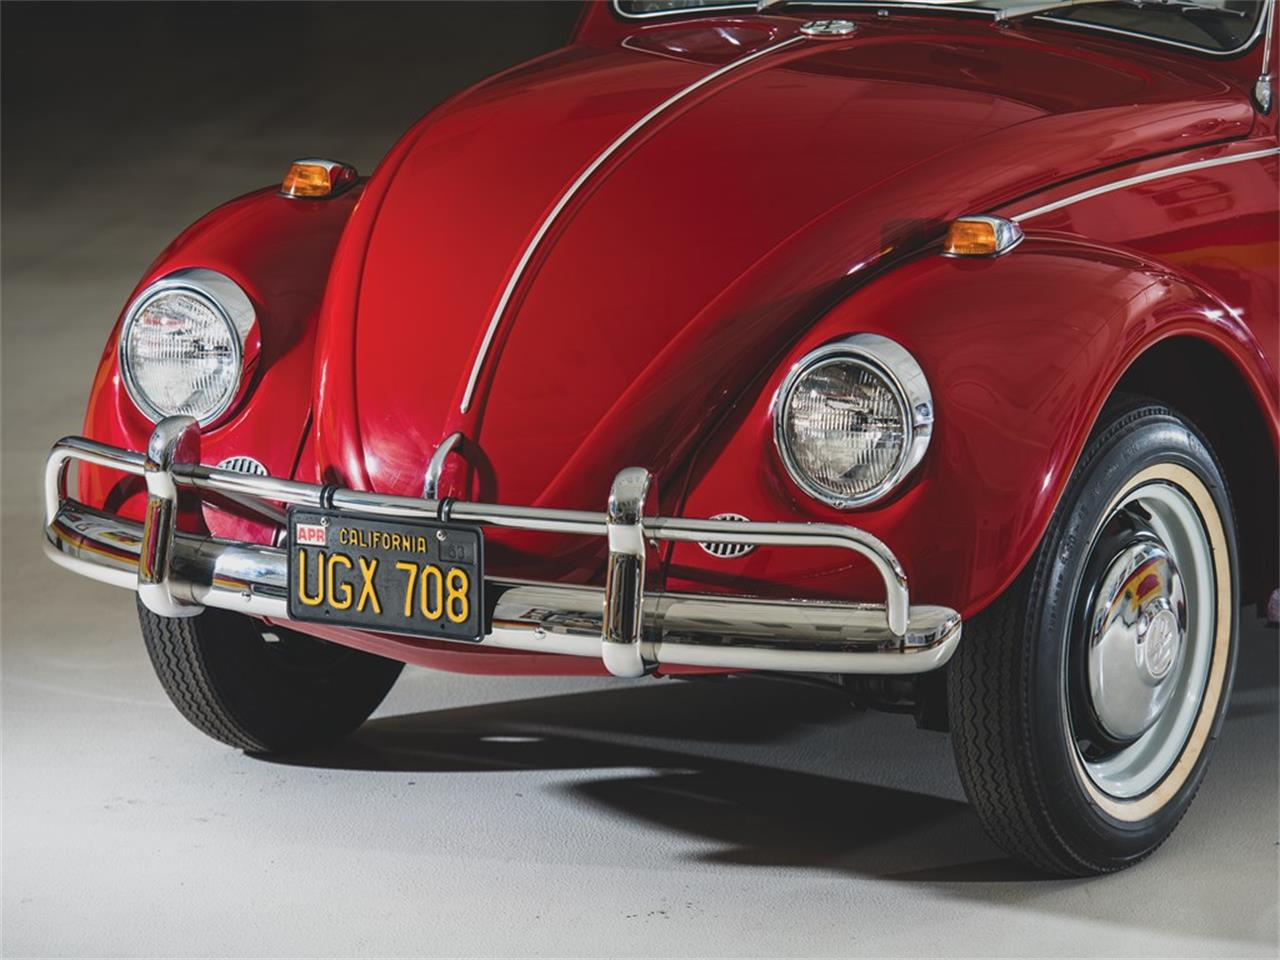 Large Picture of Classic '67 Volkswagen Beetle located in Dayton Ohio Auction Vehicle Offered by RM Sotheby's 405 (remove ID# on next use) - QWTU